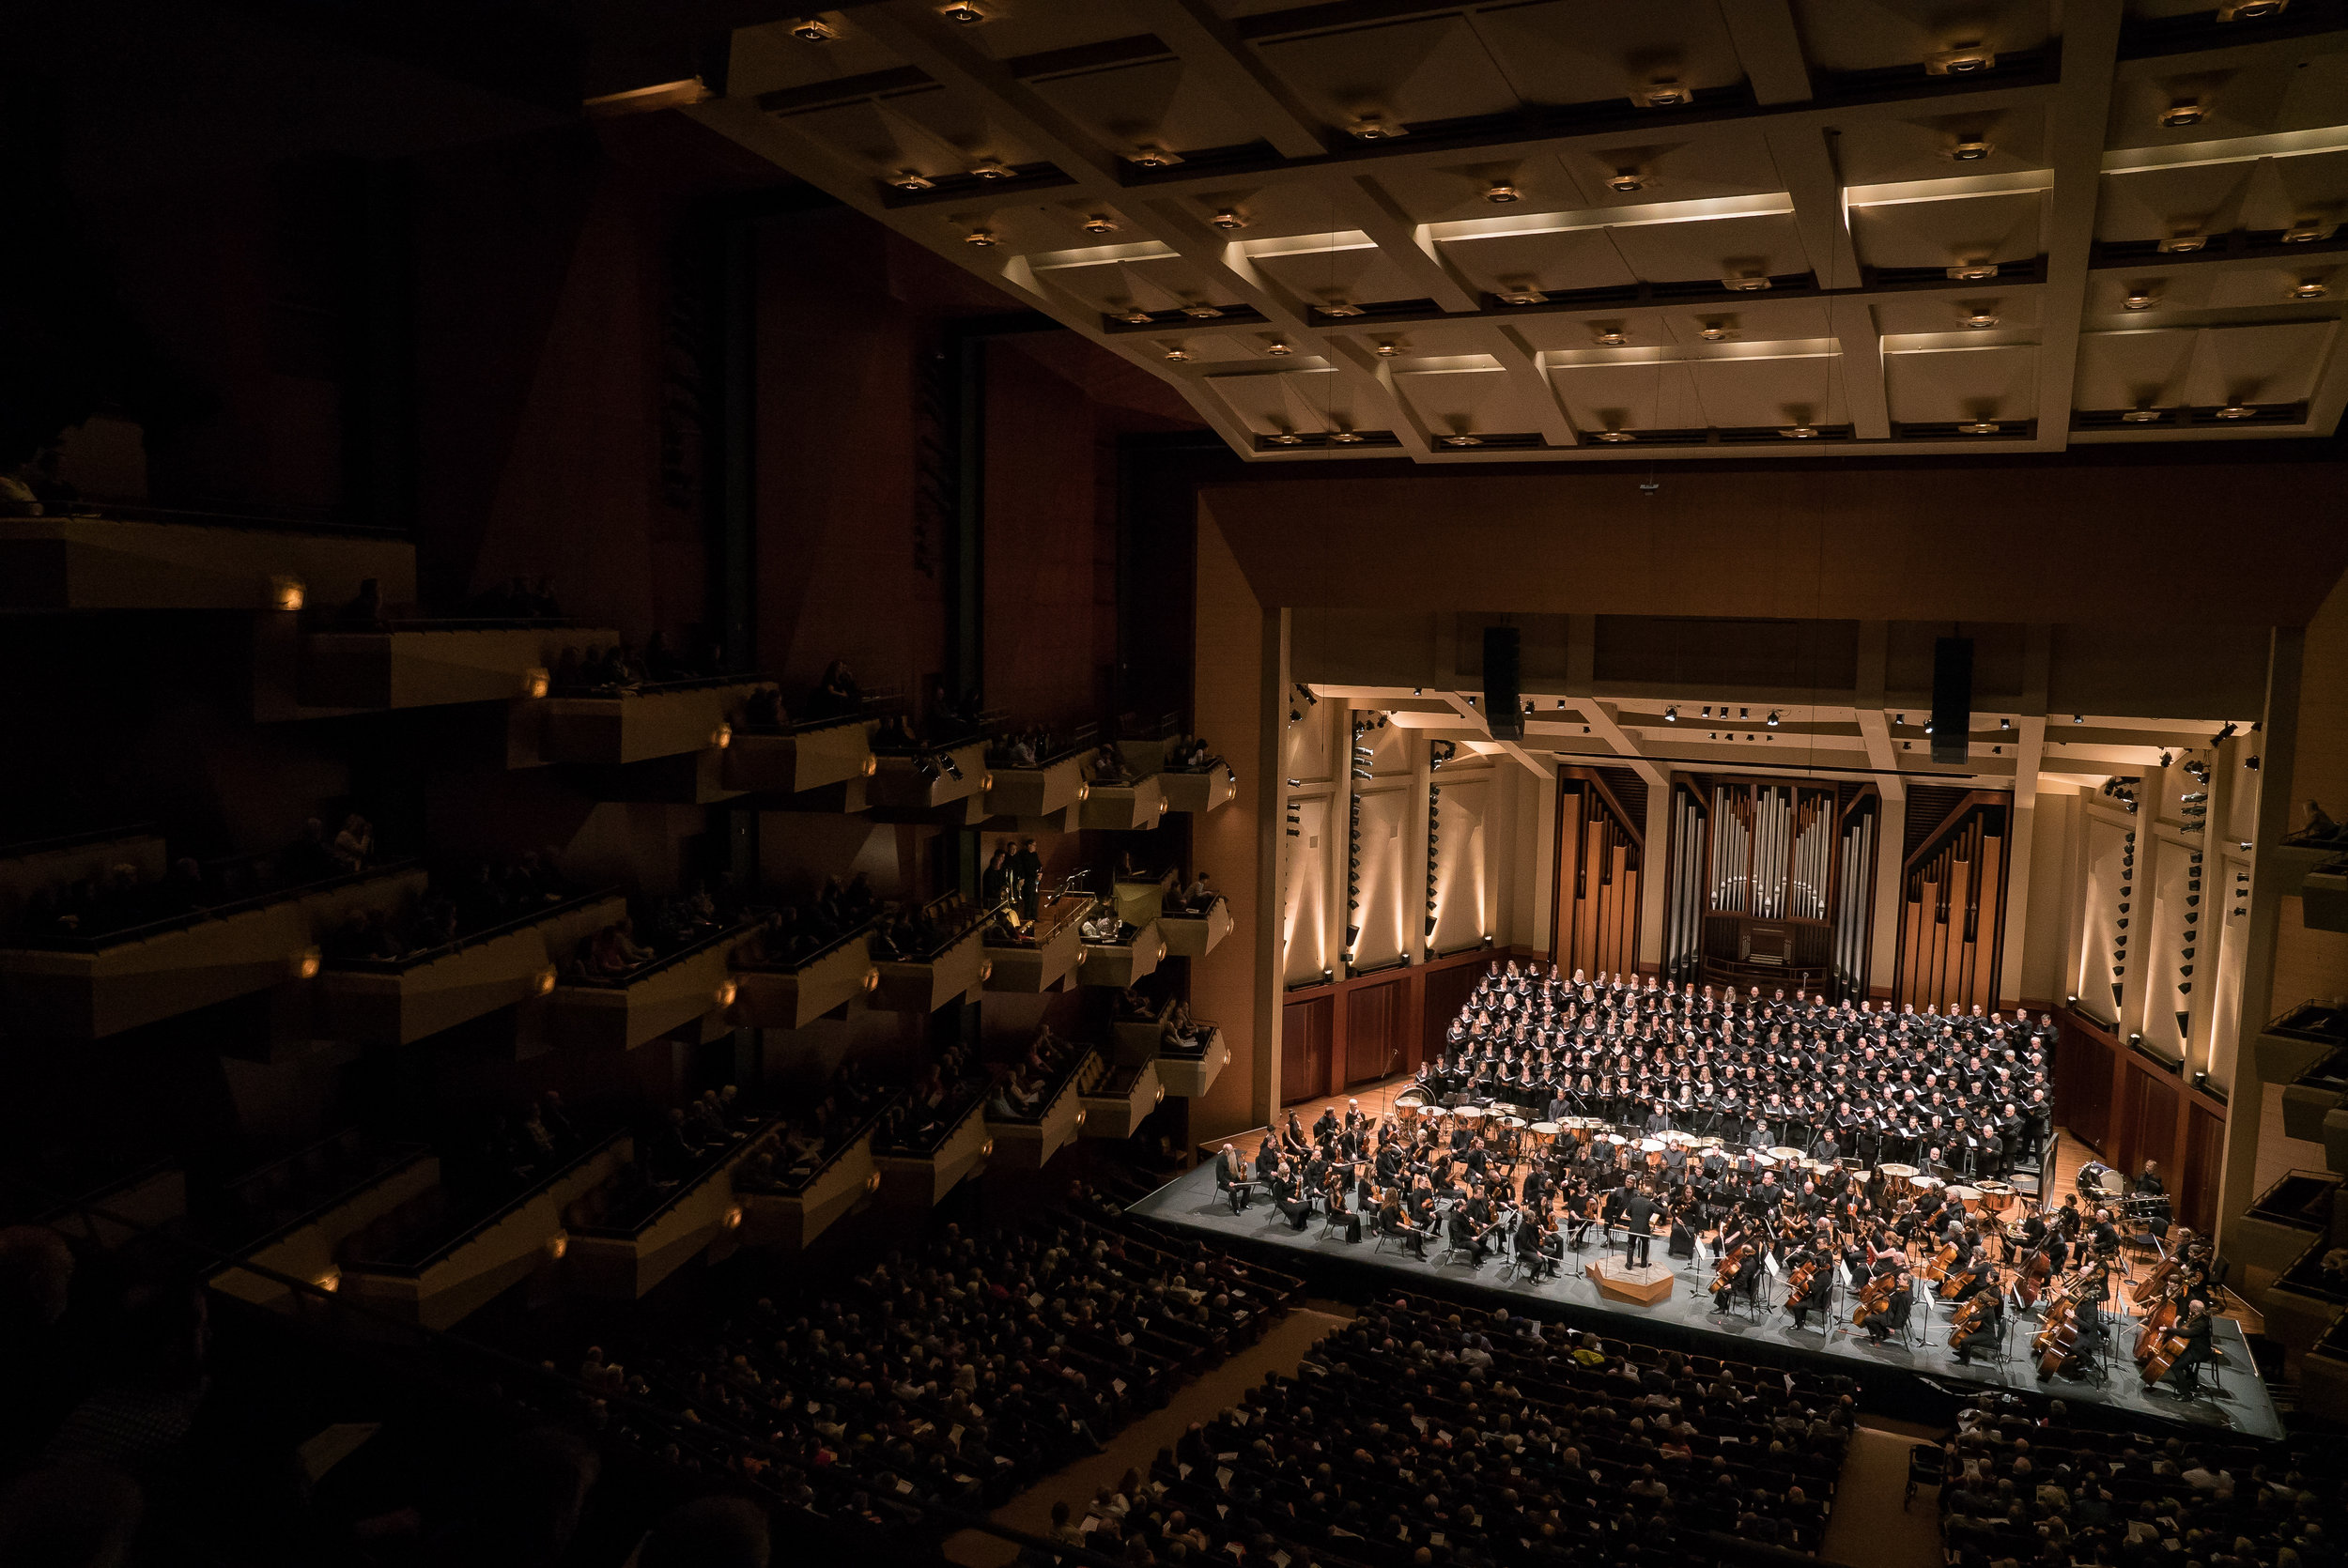 """Ludovic Morlot leads the Seattle Symphony in a performance of Berlioz's Requiem at Benaroya Hall in November 2017. Brass choirs were positioned aloft at each corner of the hall to generate the directional """"surround-sound"""" that Berlioz intended. Photo by Brandon Patoc."""